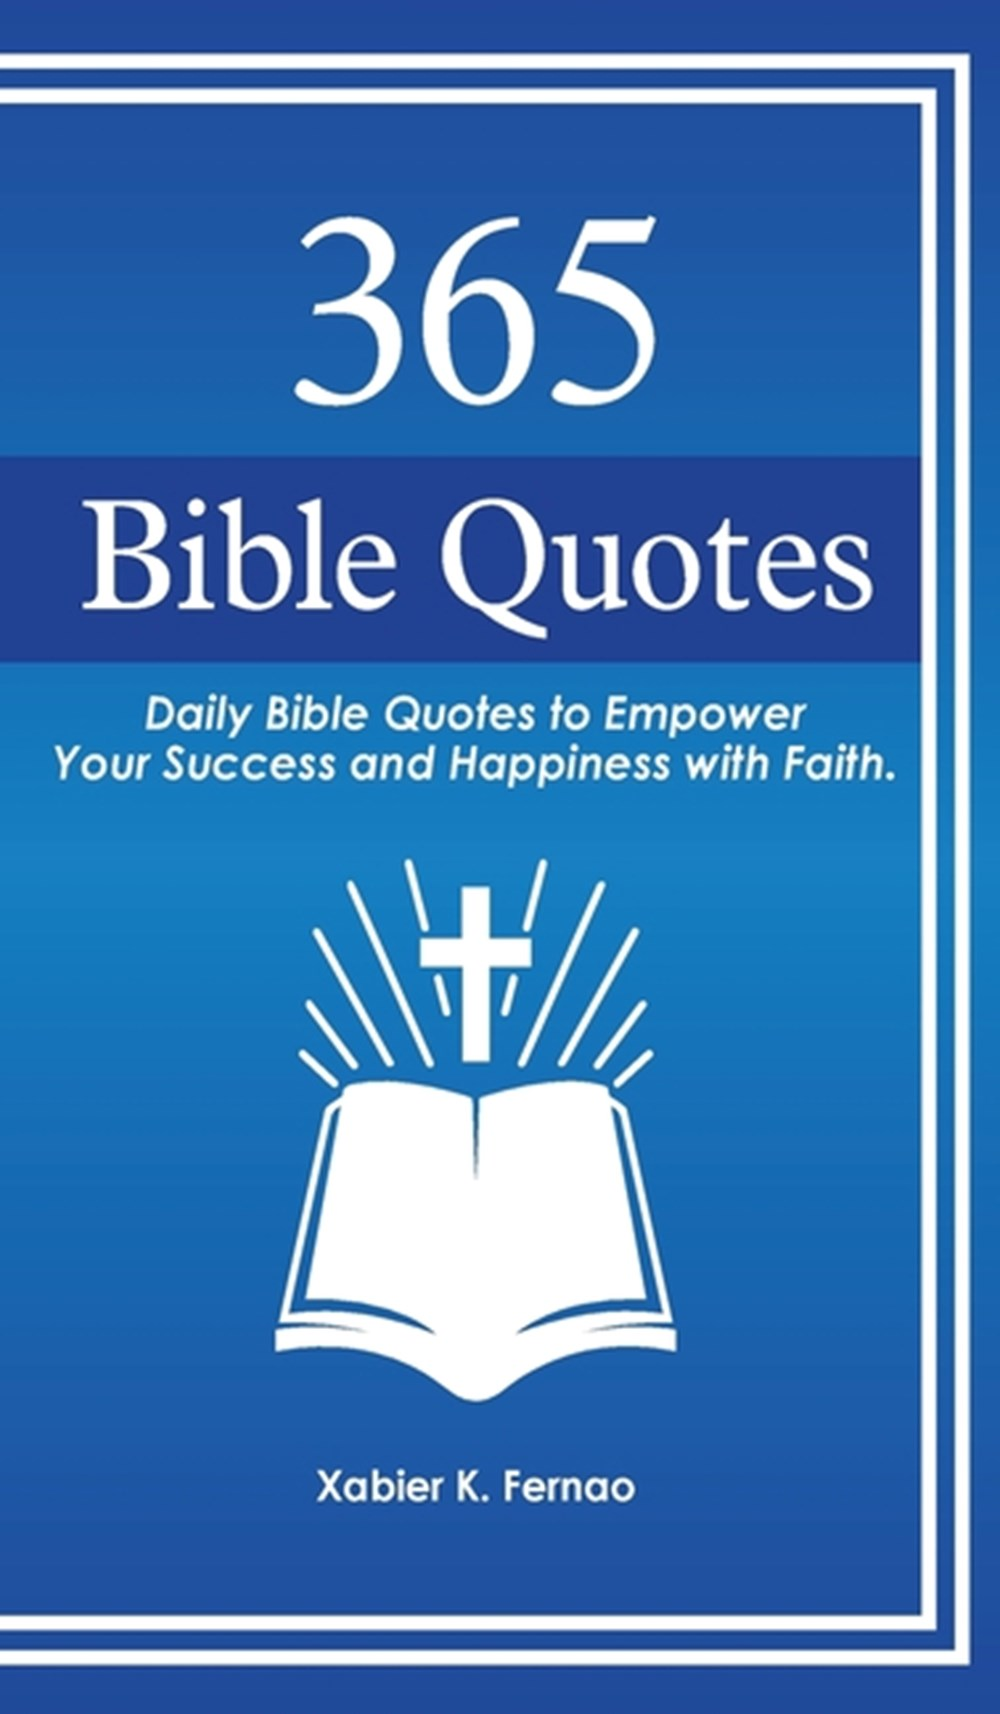 365 Bible Quotes Daily Bible Quotes to Empower Your Success and Happiness with Faith